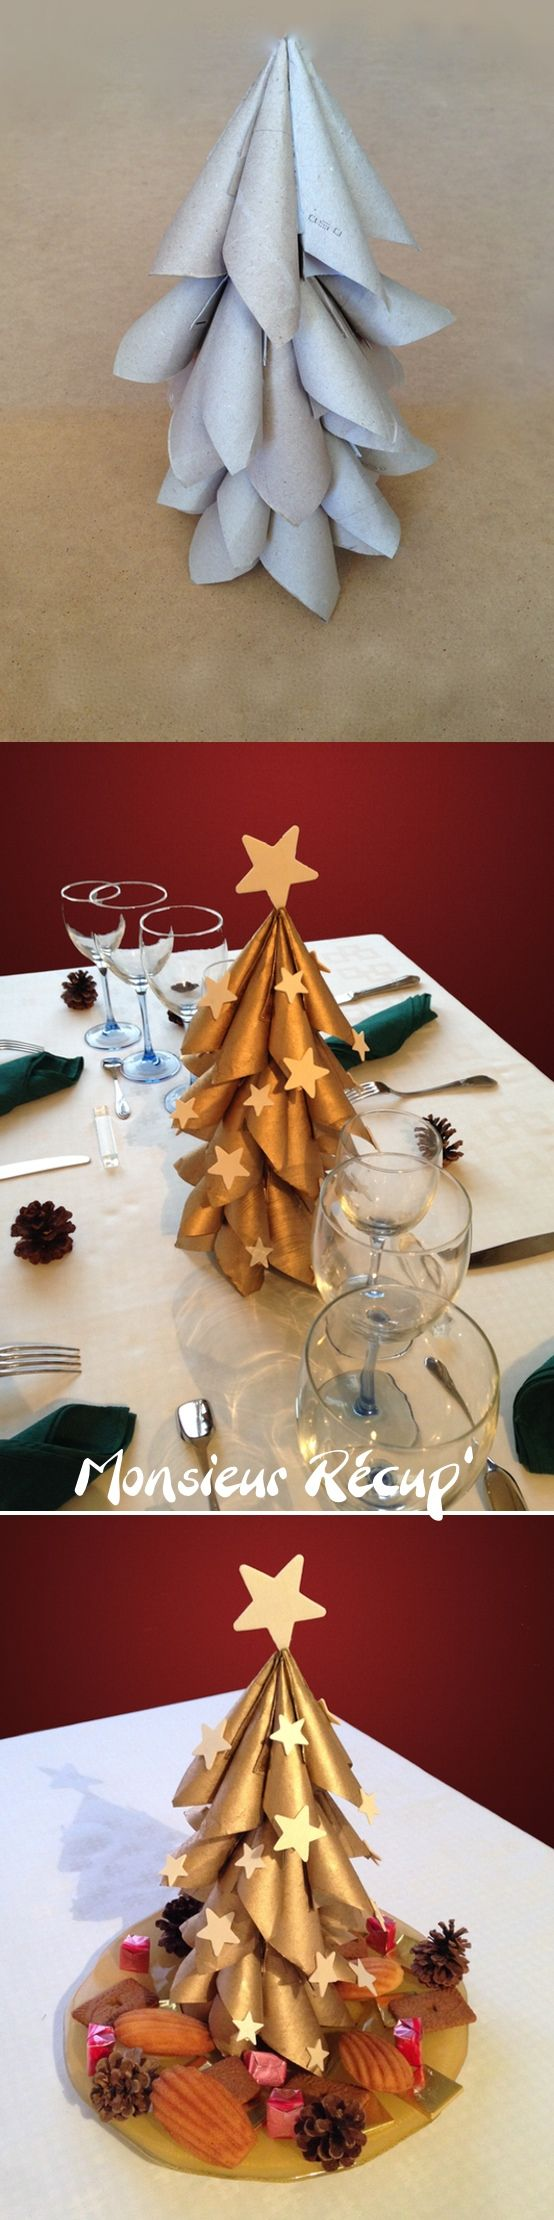 Best 25 table noel ideas on pinterest - Decoration de noel avec rouleau papier toilette ...